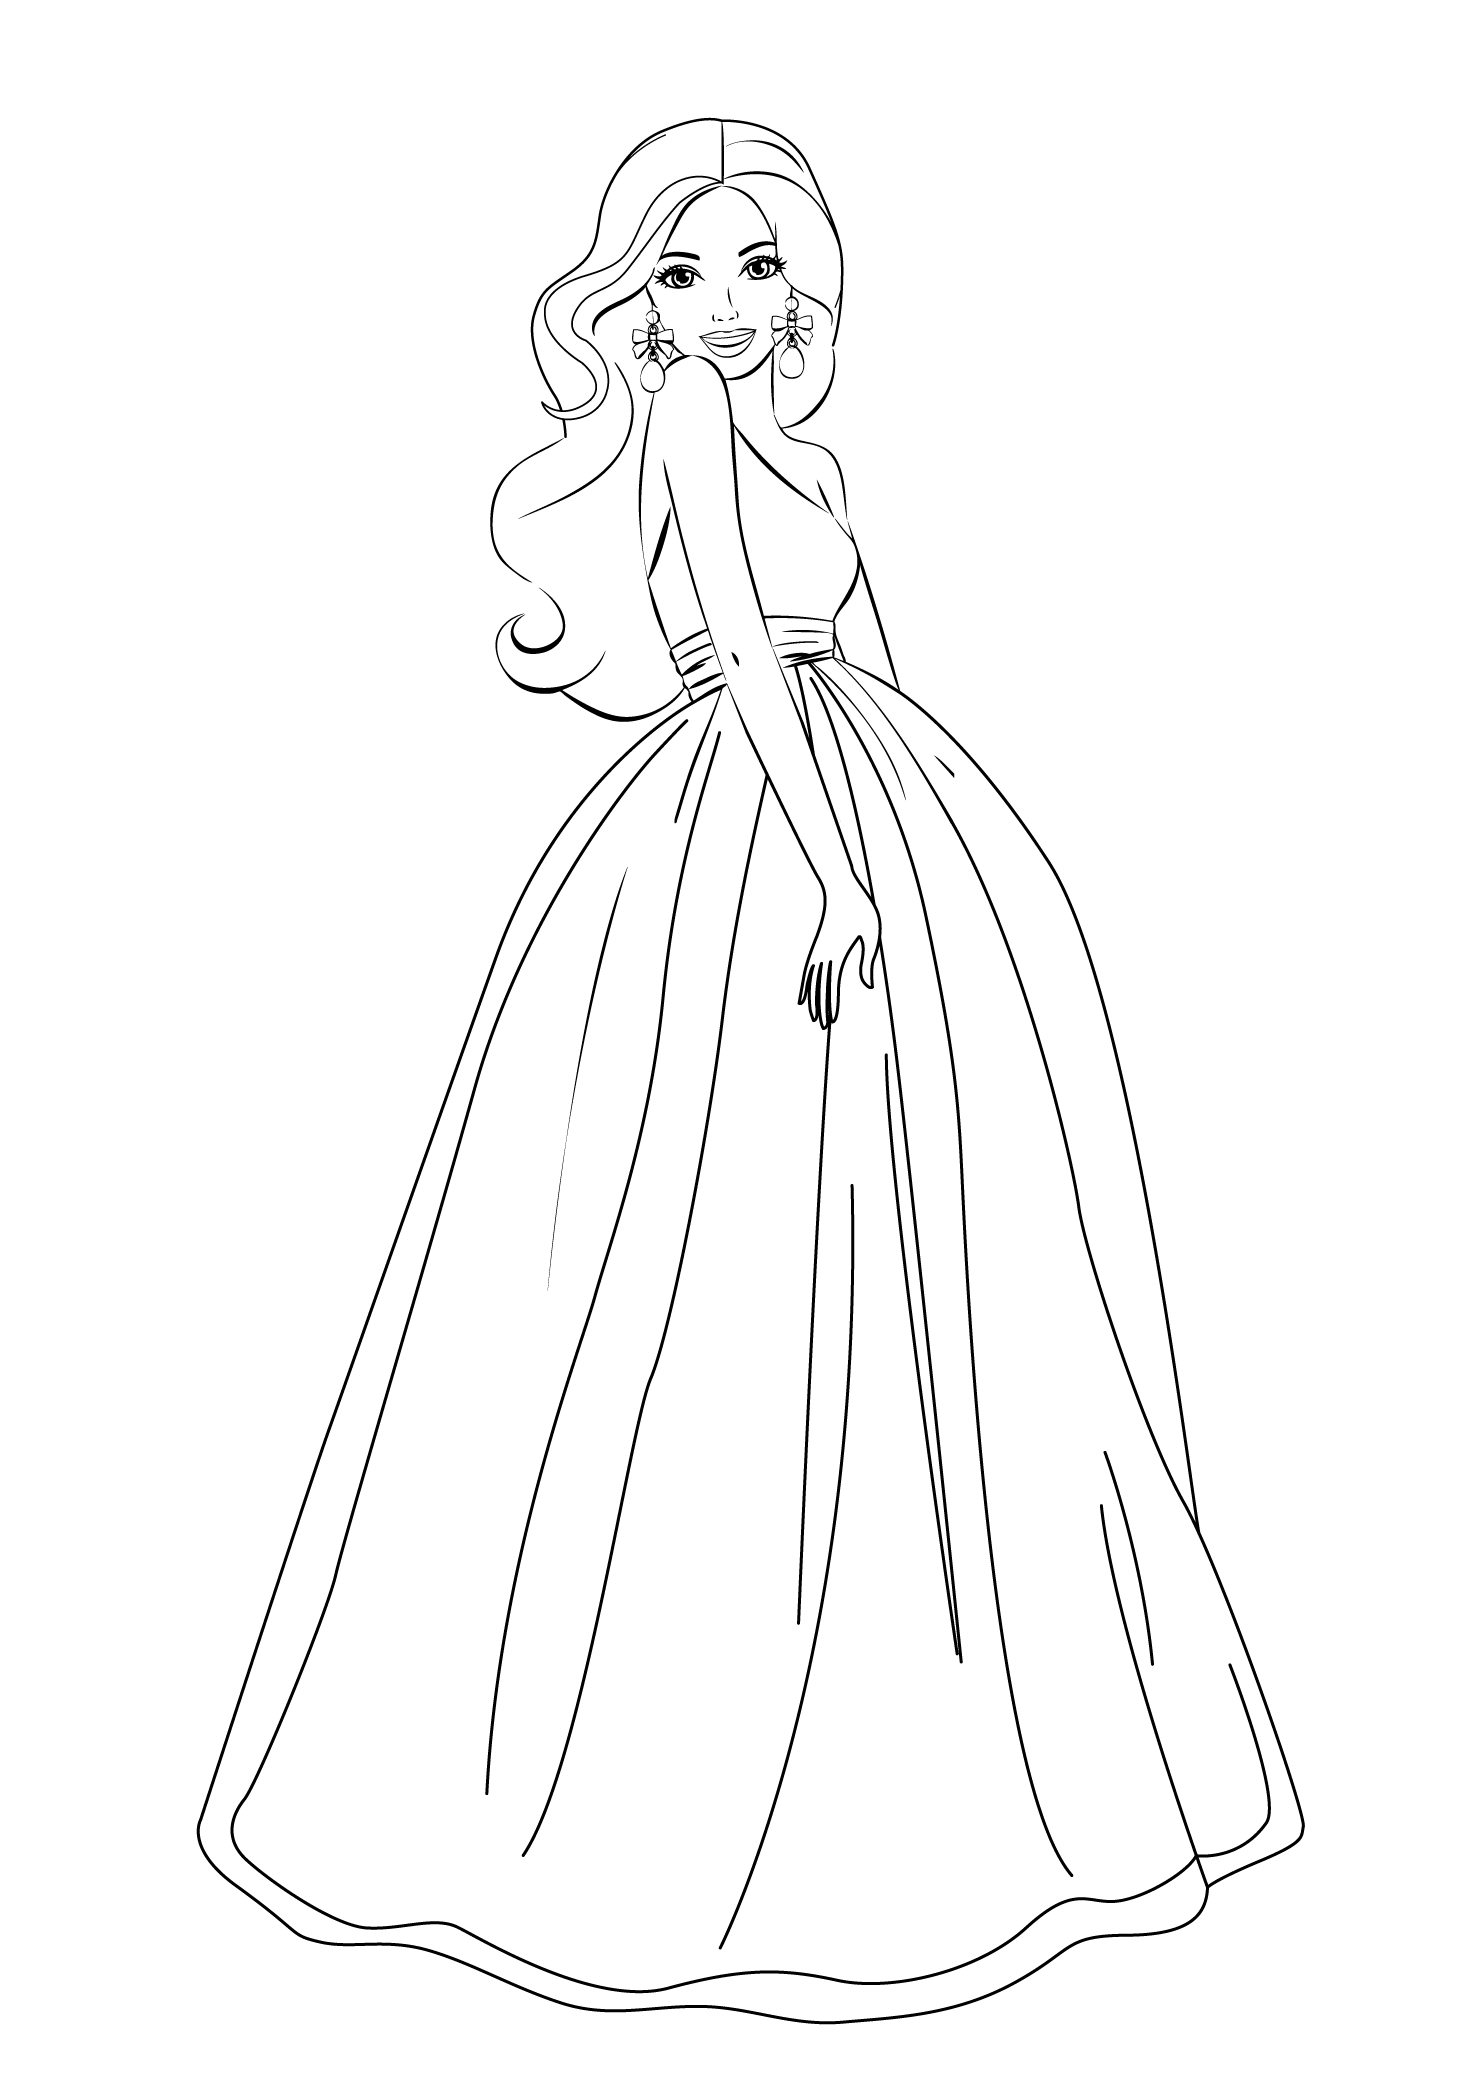 Coloring sheet barbie - Barbie Coloring Pages For Girls Free Printable